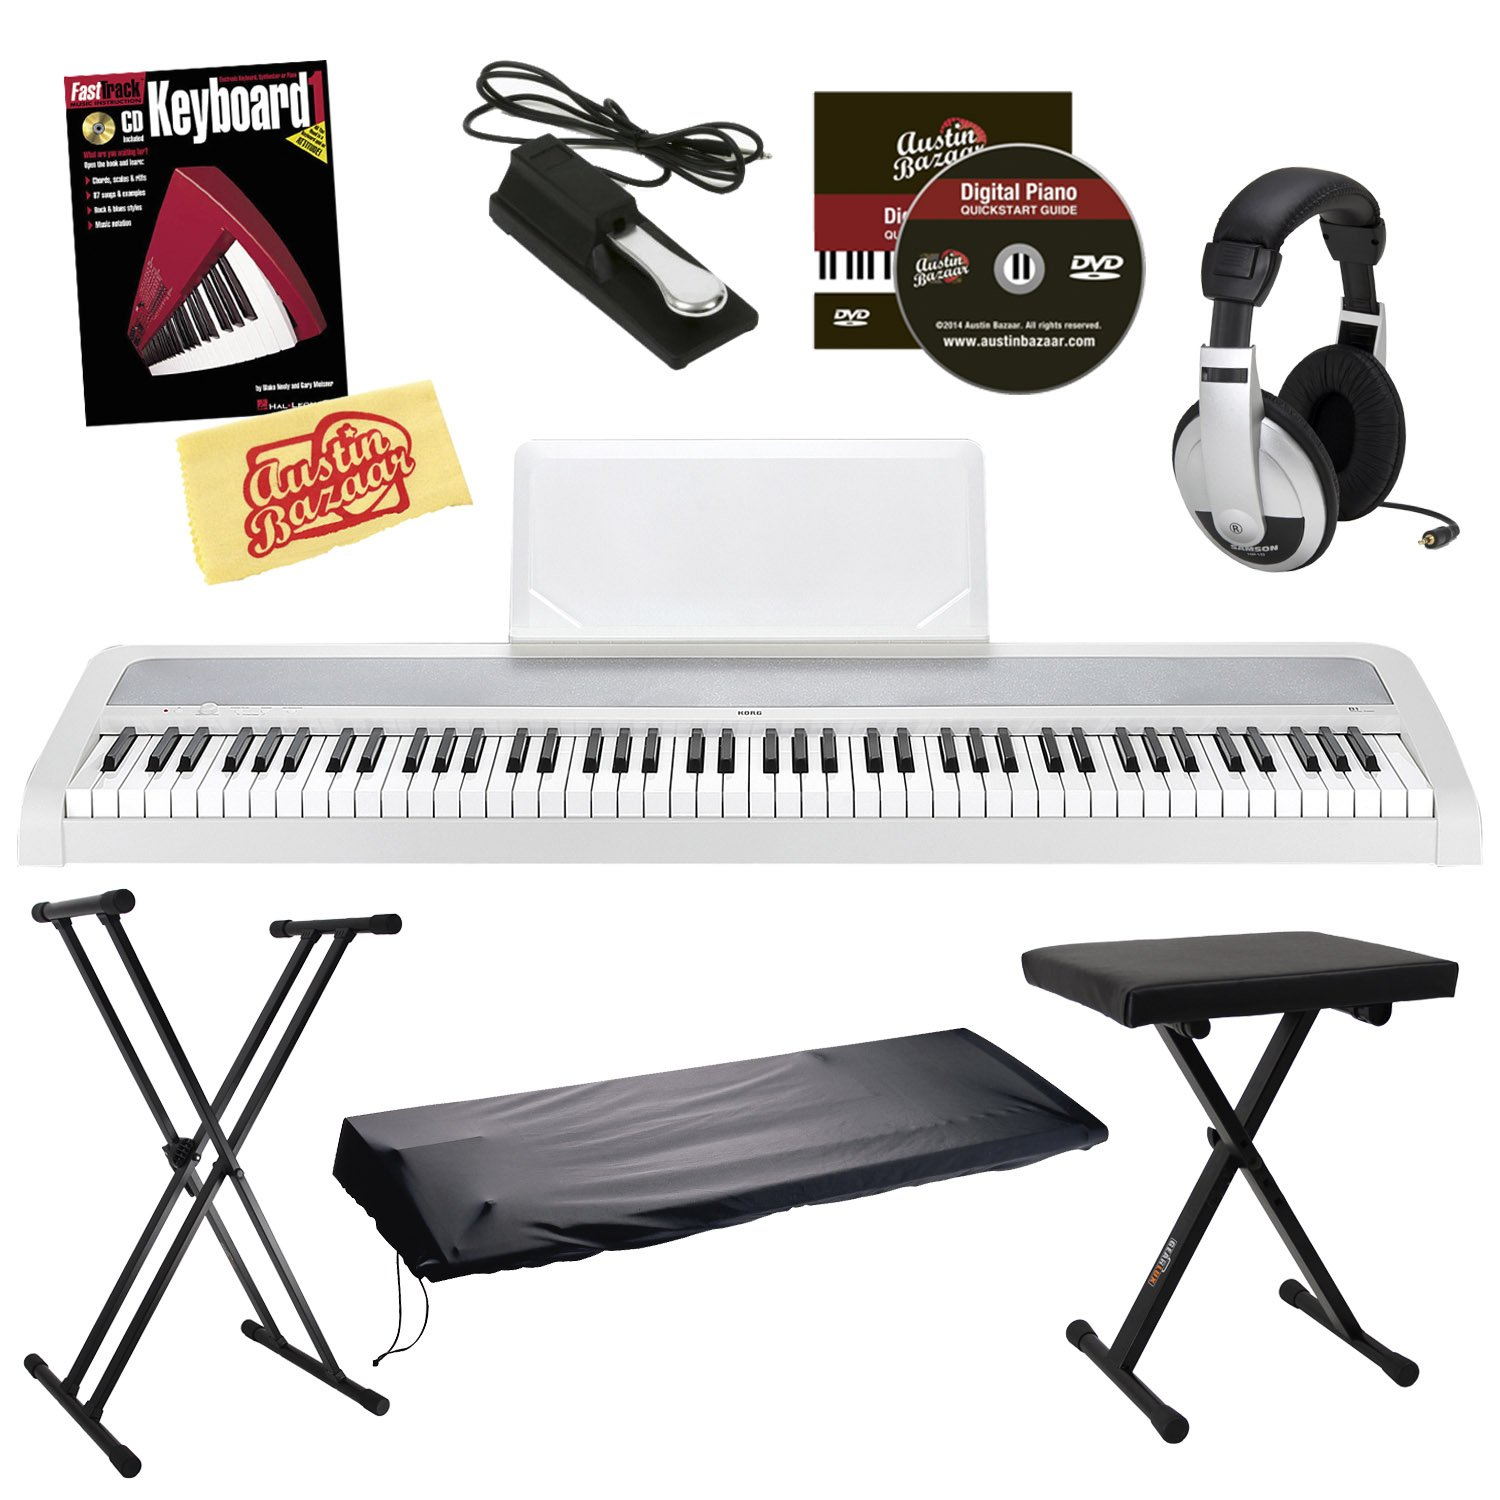 korg b1 digital piano bundle with bench stand dust